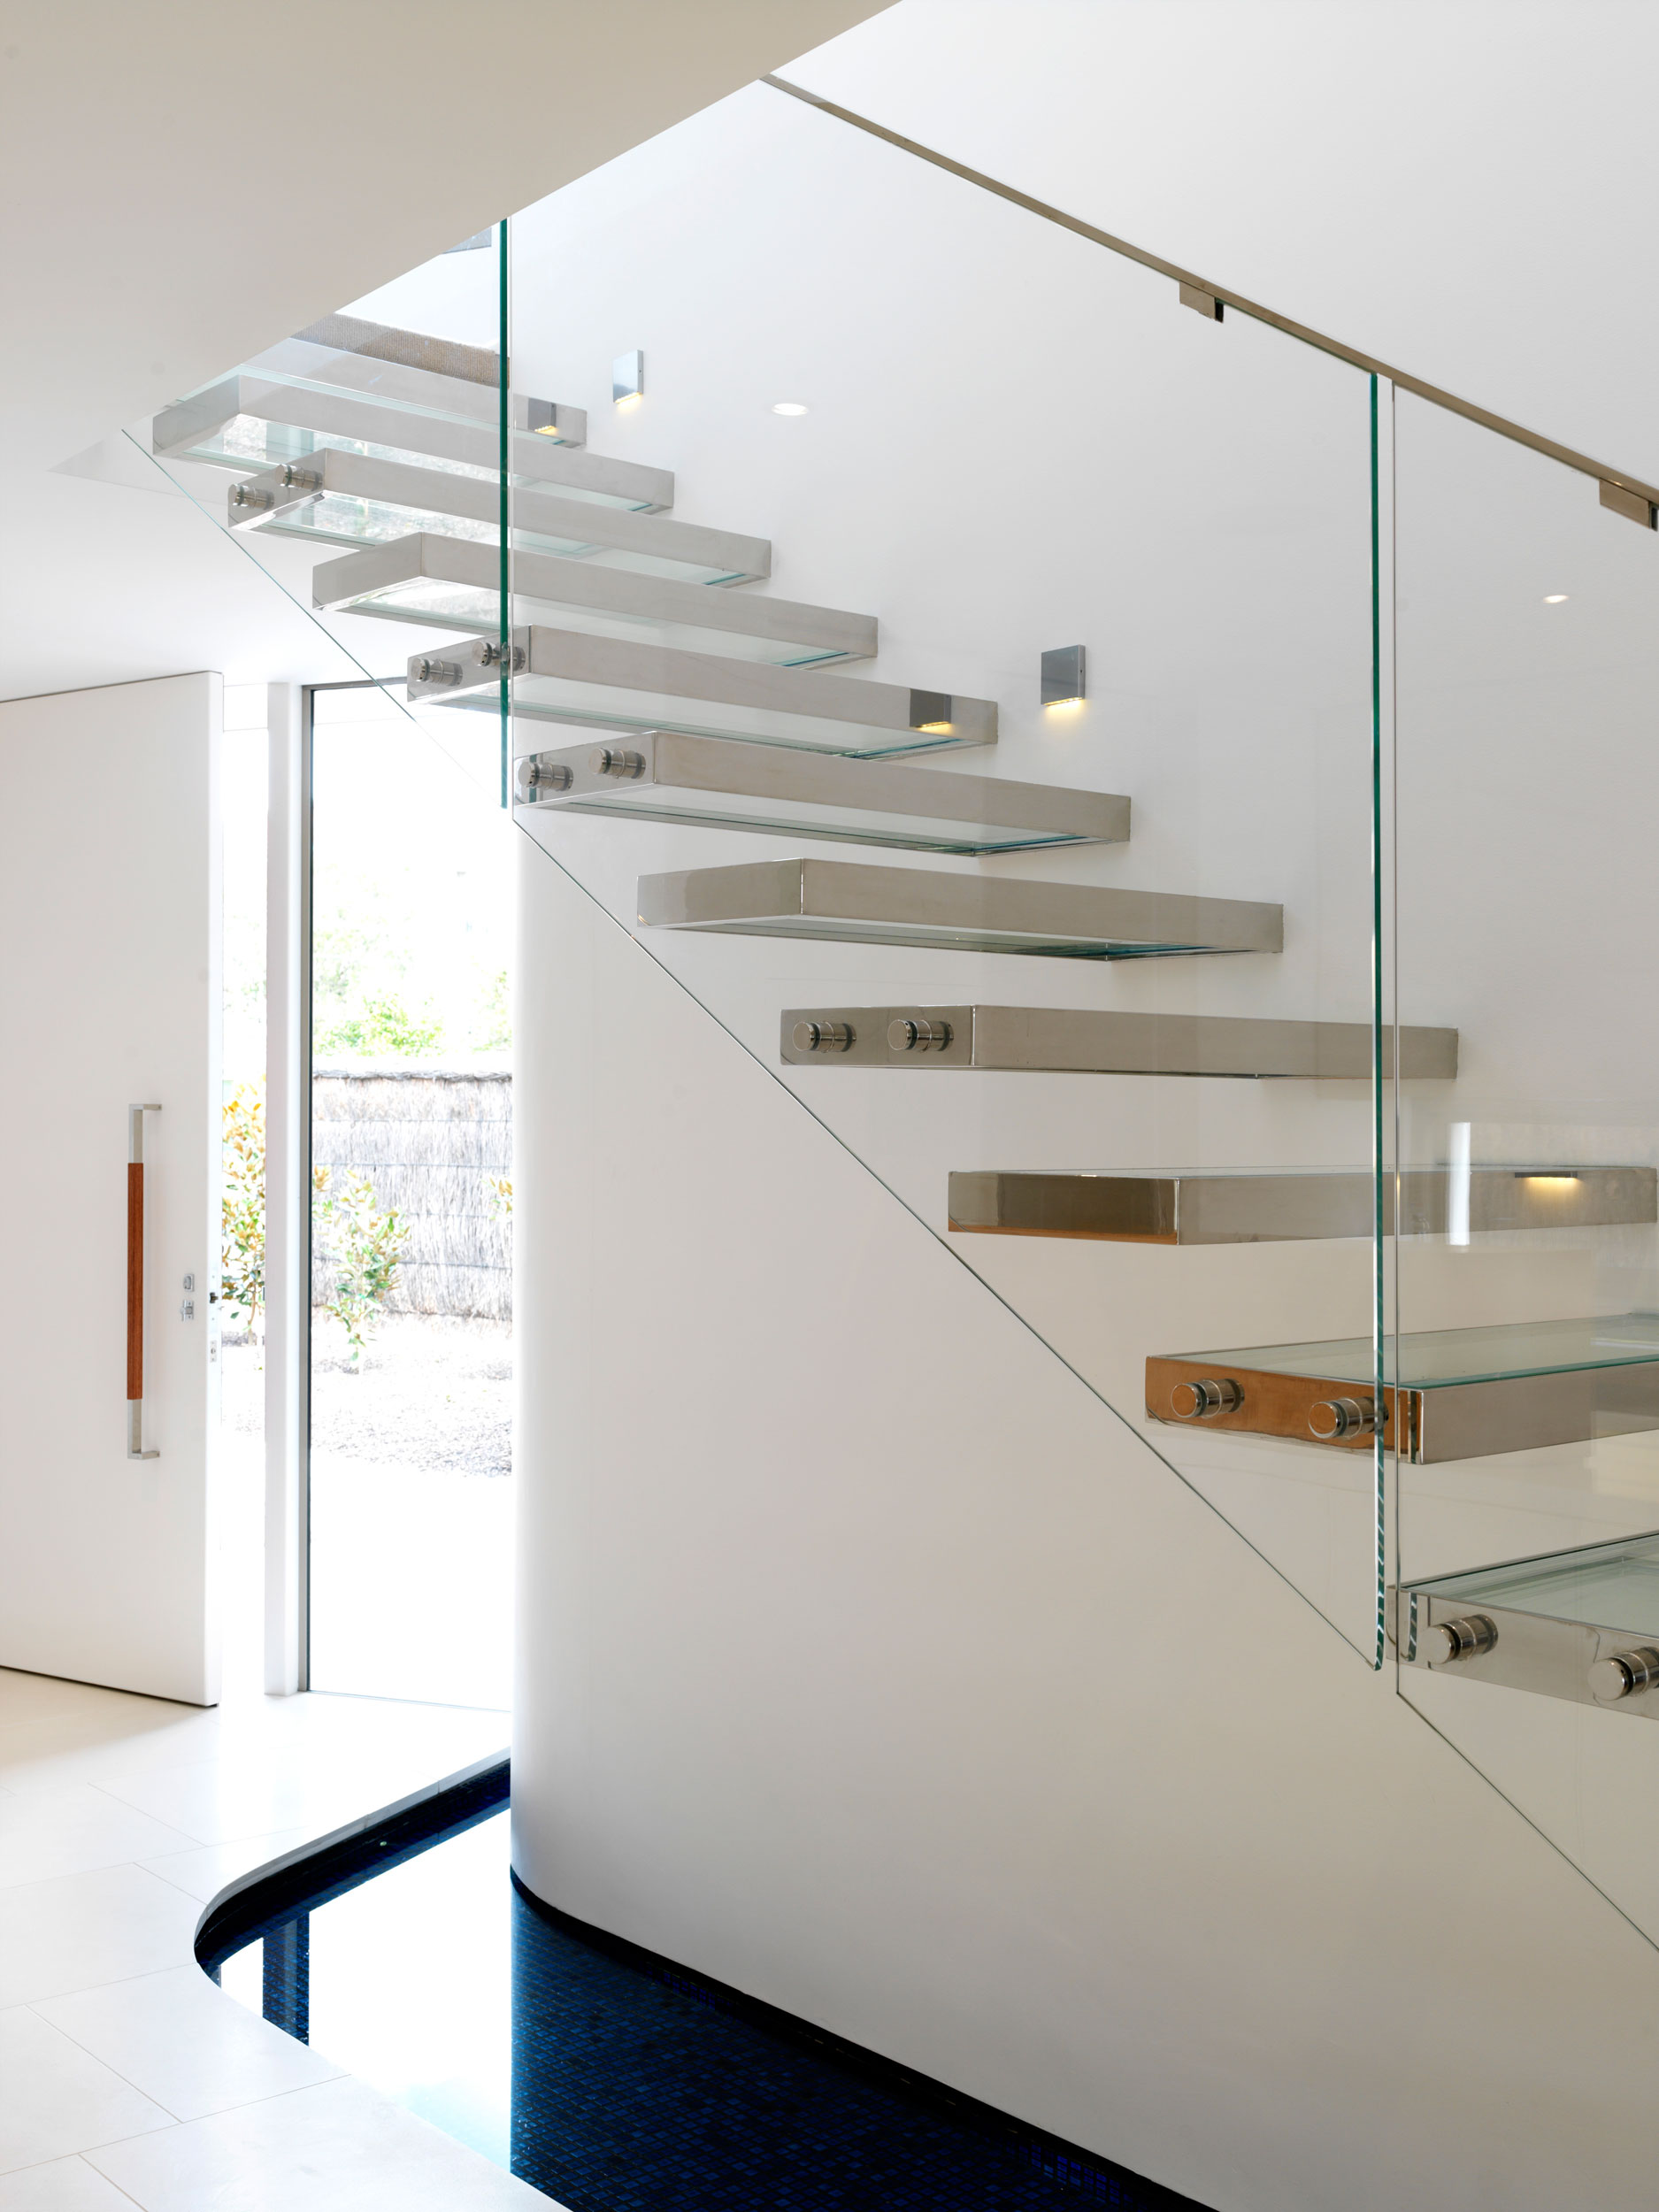 25 Best Ideas About Modern Staircase On Pinterest: Modern Handrail Ideas For More Stylish Staircase